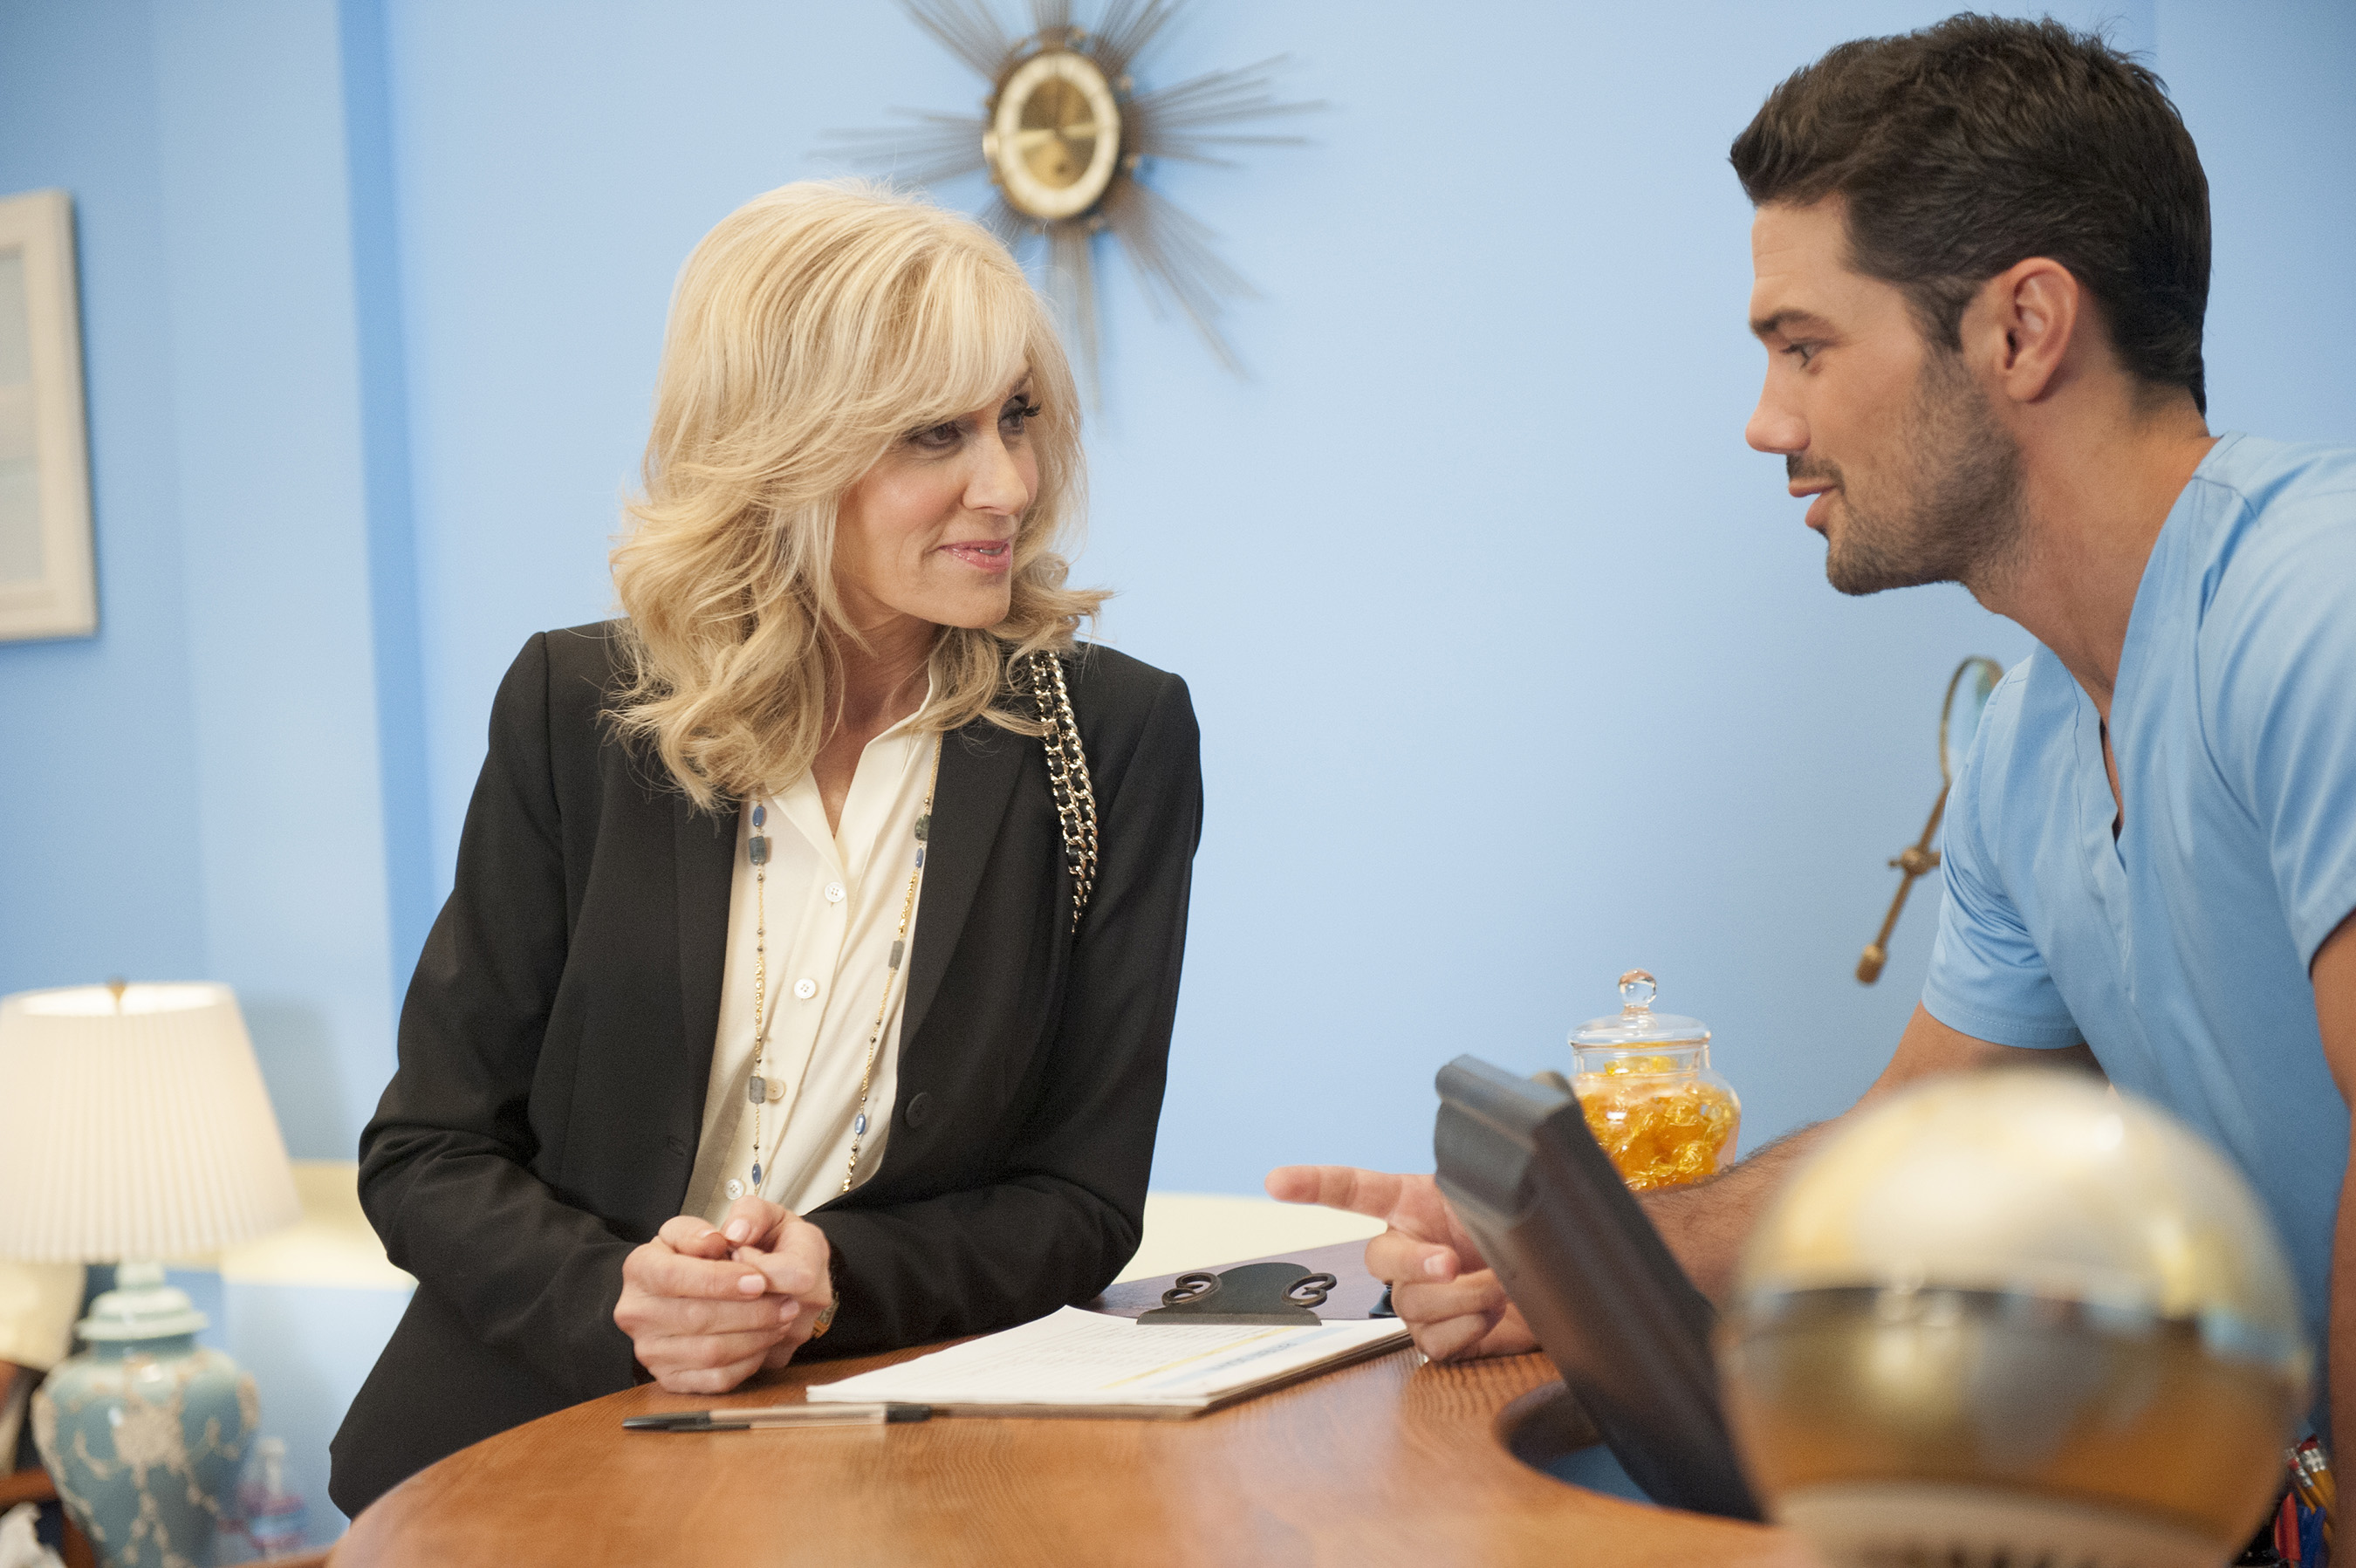 Actress Judith Light Joins National Council On Aging To Educate Adults 65 And Older About The Risks Of Flu And The Importance Of Annual Flu Vaccination